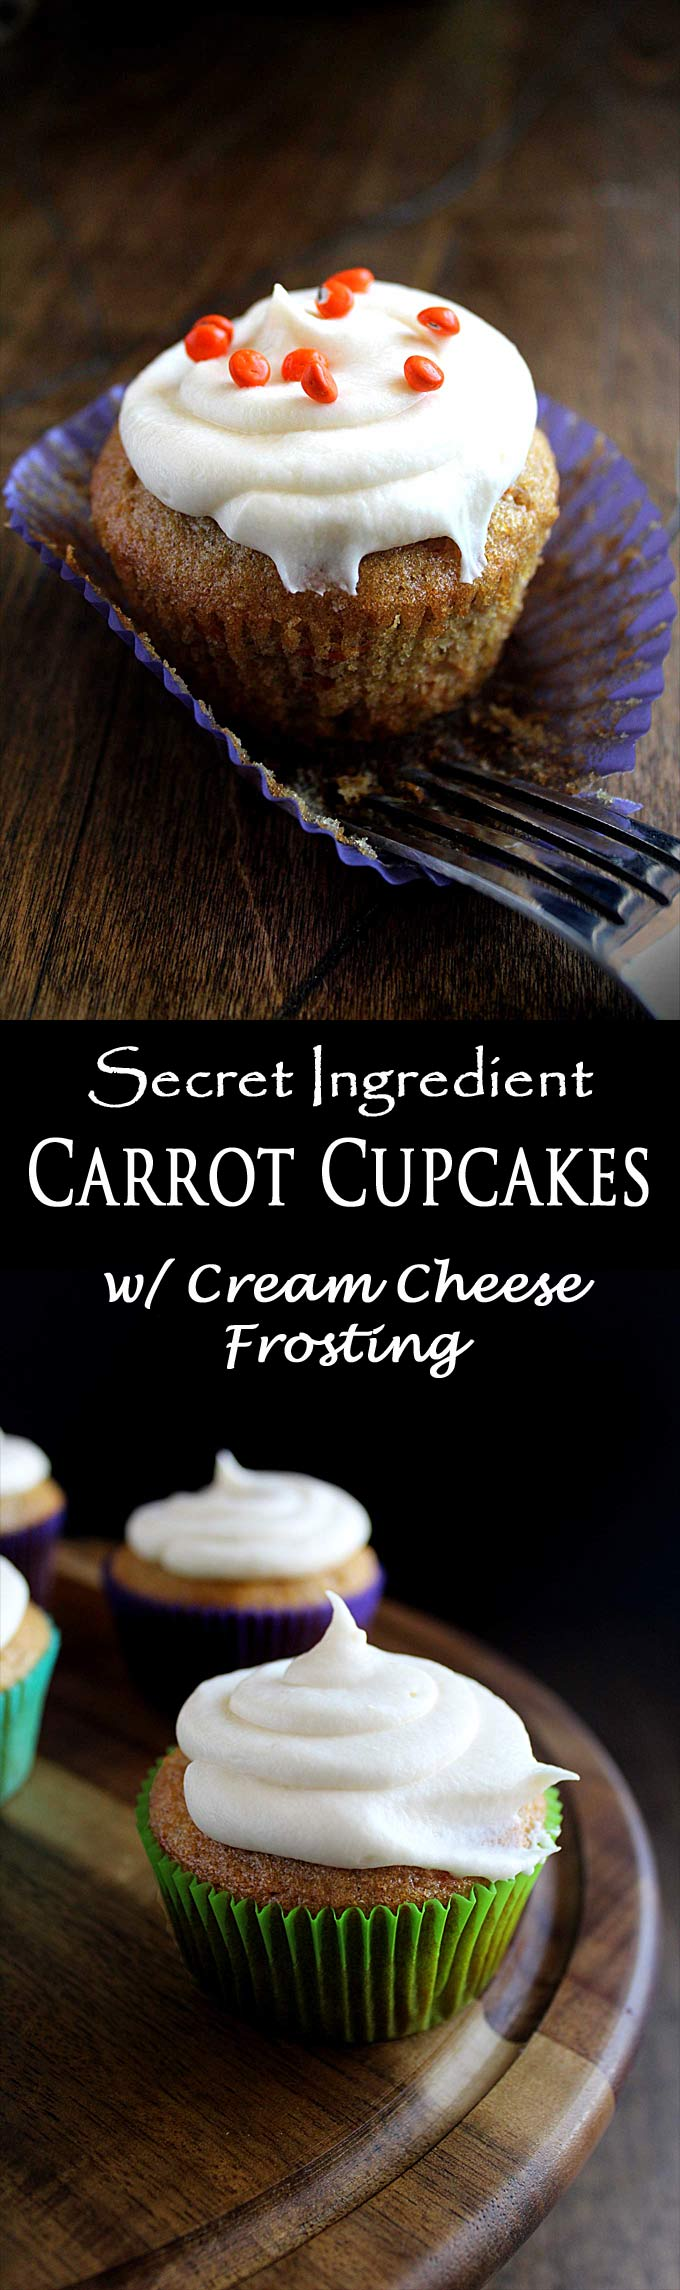 Carrot Cupcakes with Cream Cheese Frosting | Zucchini & Pineapple | Best Recipe | Vegetarian